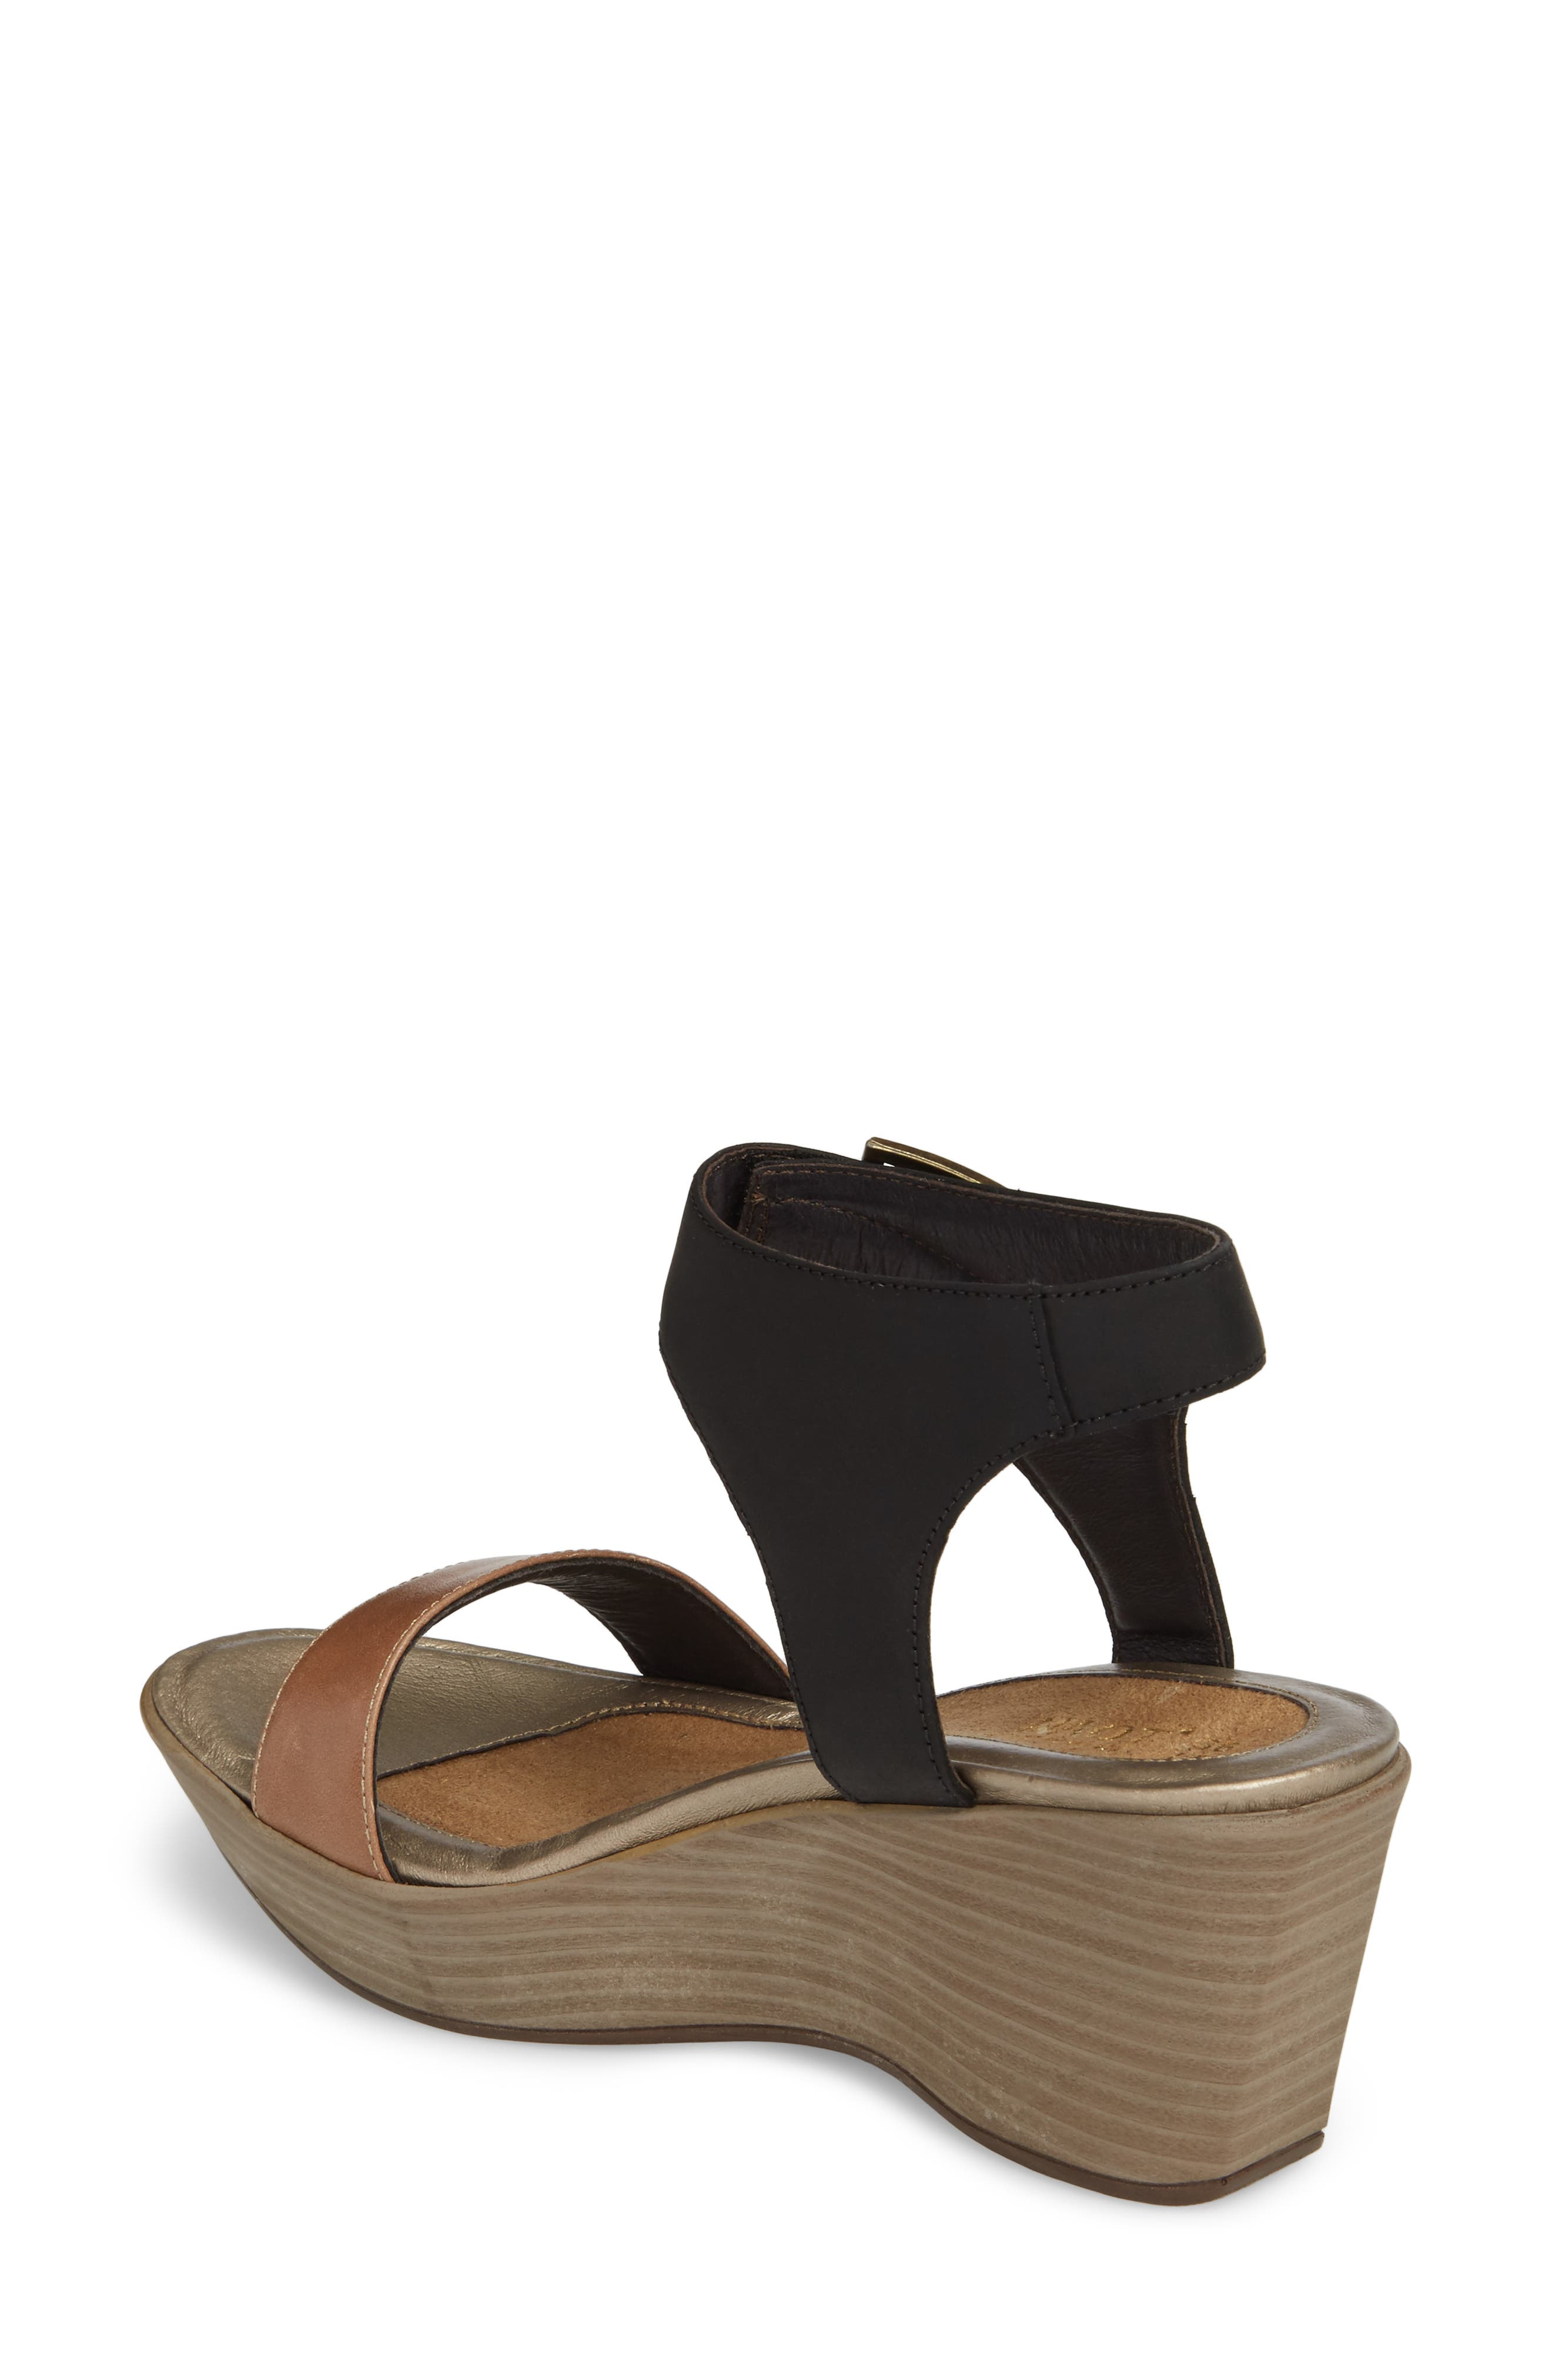 Caprice Wedge Sandal,                             Alternate thumbnail 2, color,                             TAN LEATHER